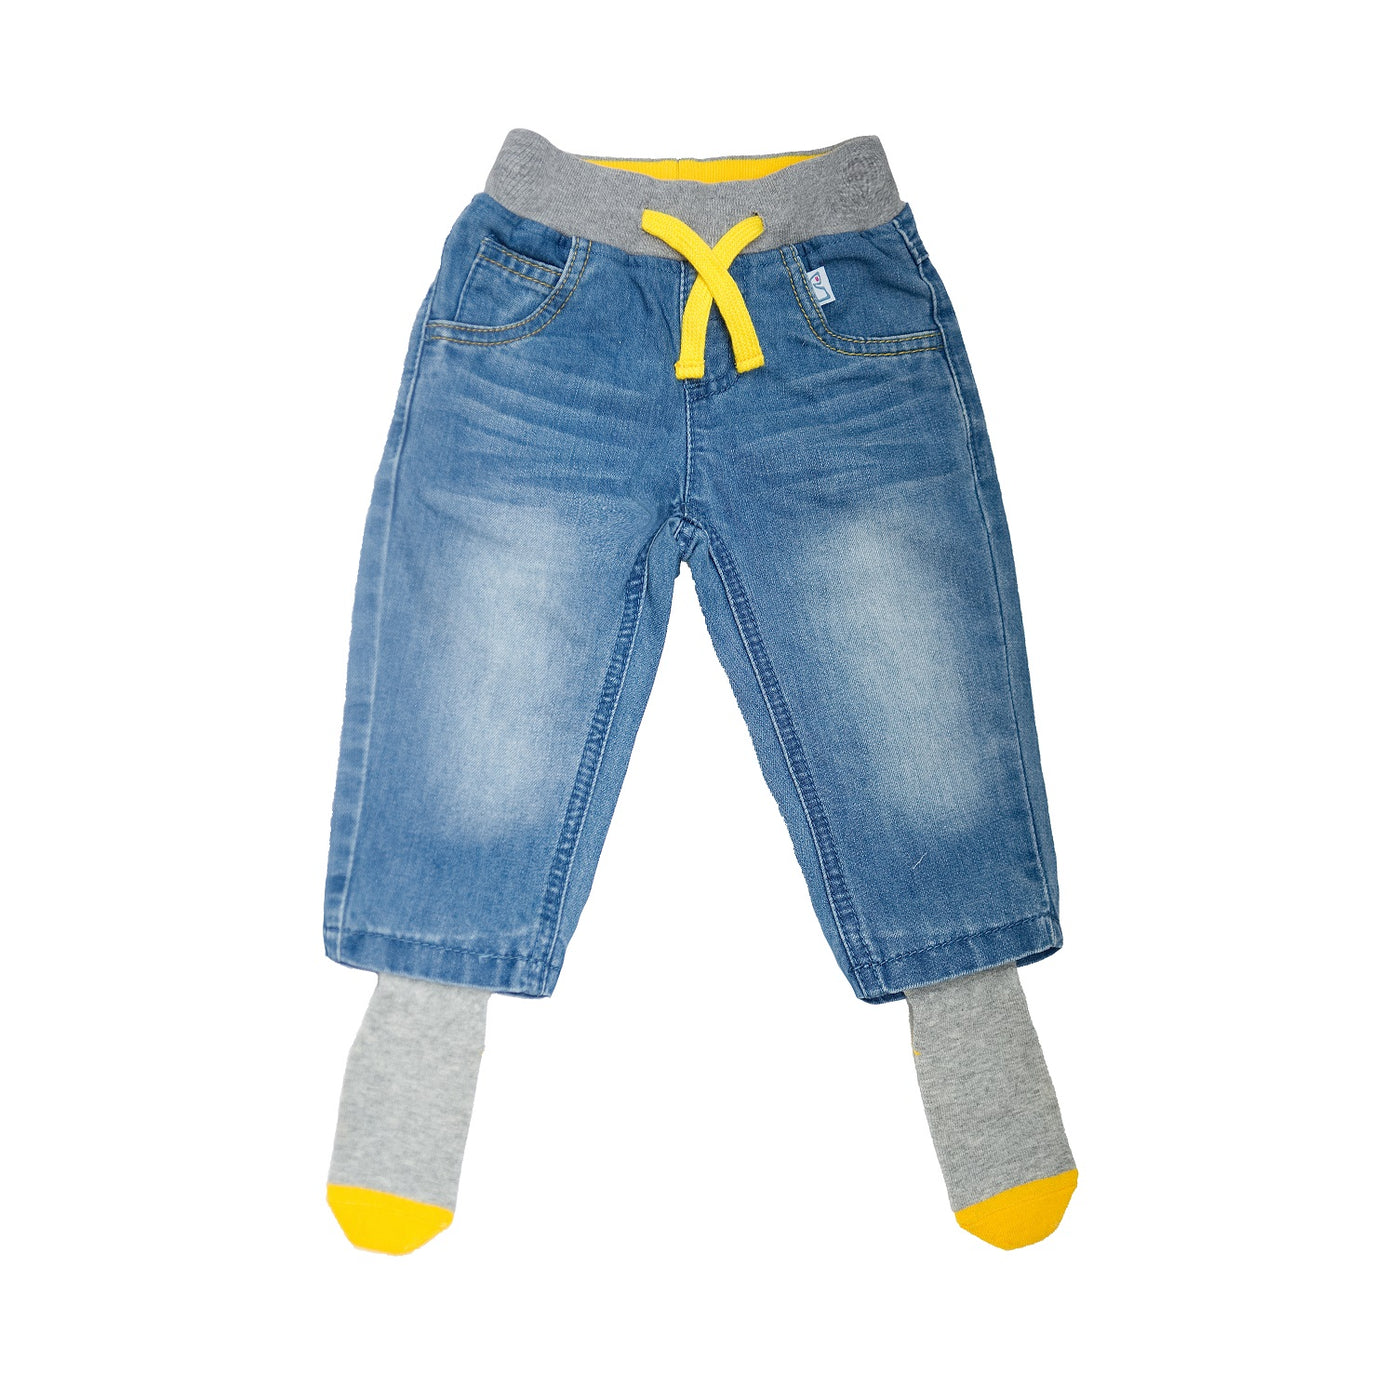 Sockatoos Original Jeans - YELLOW